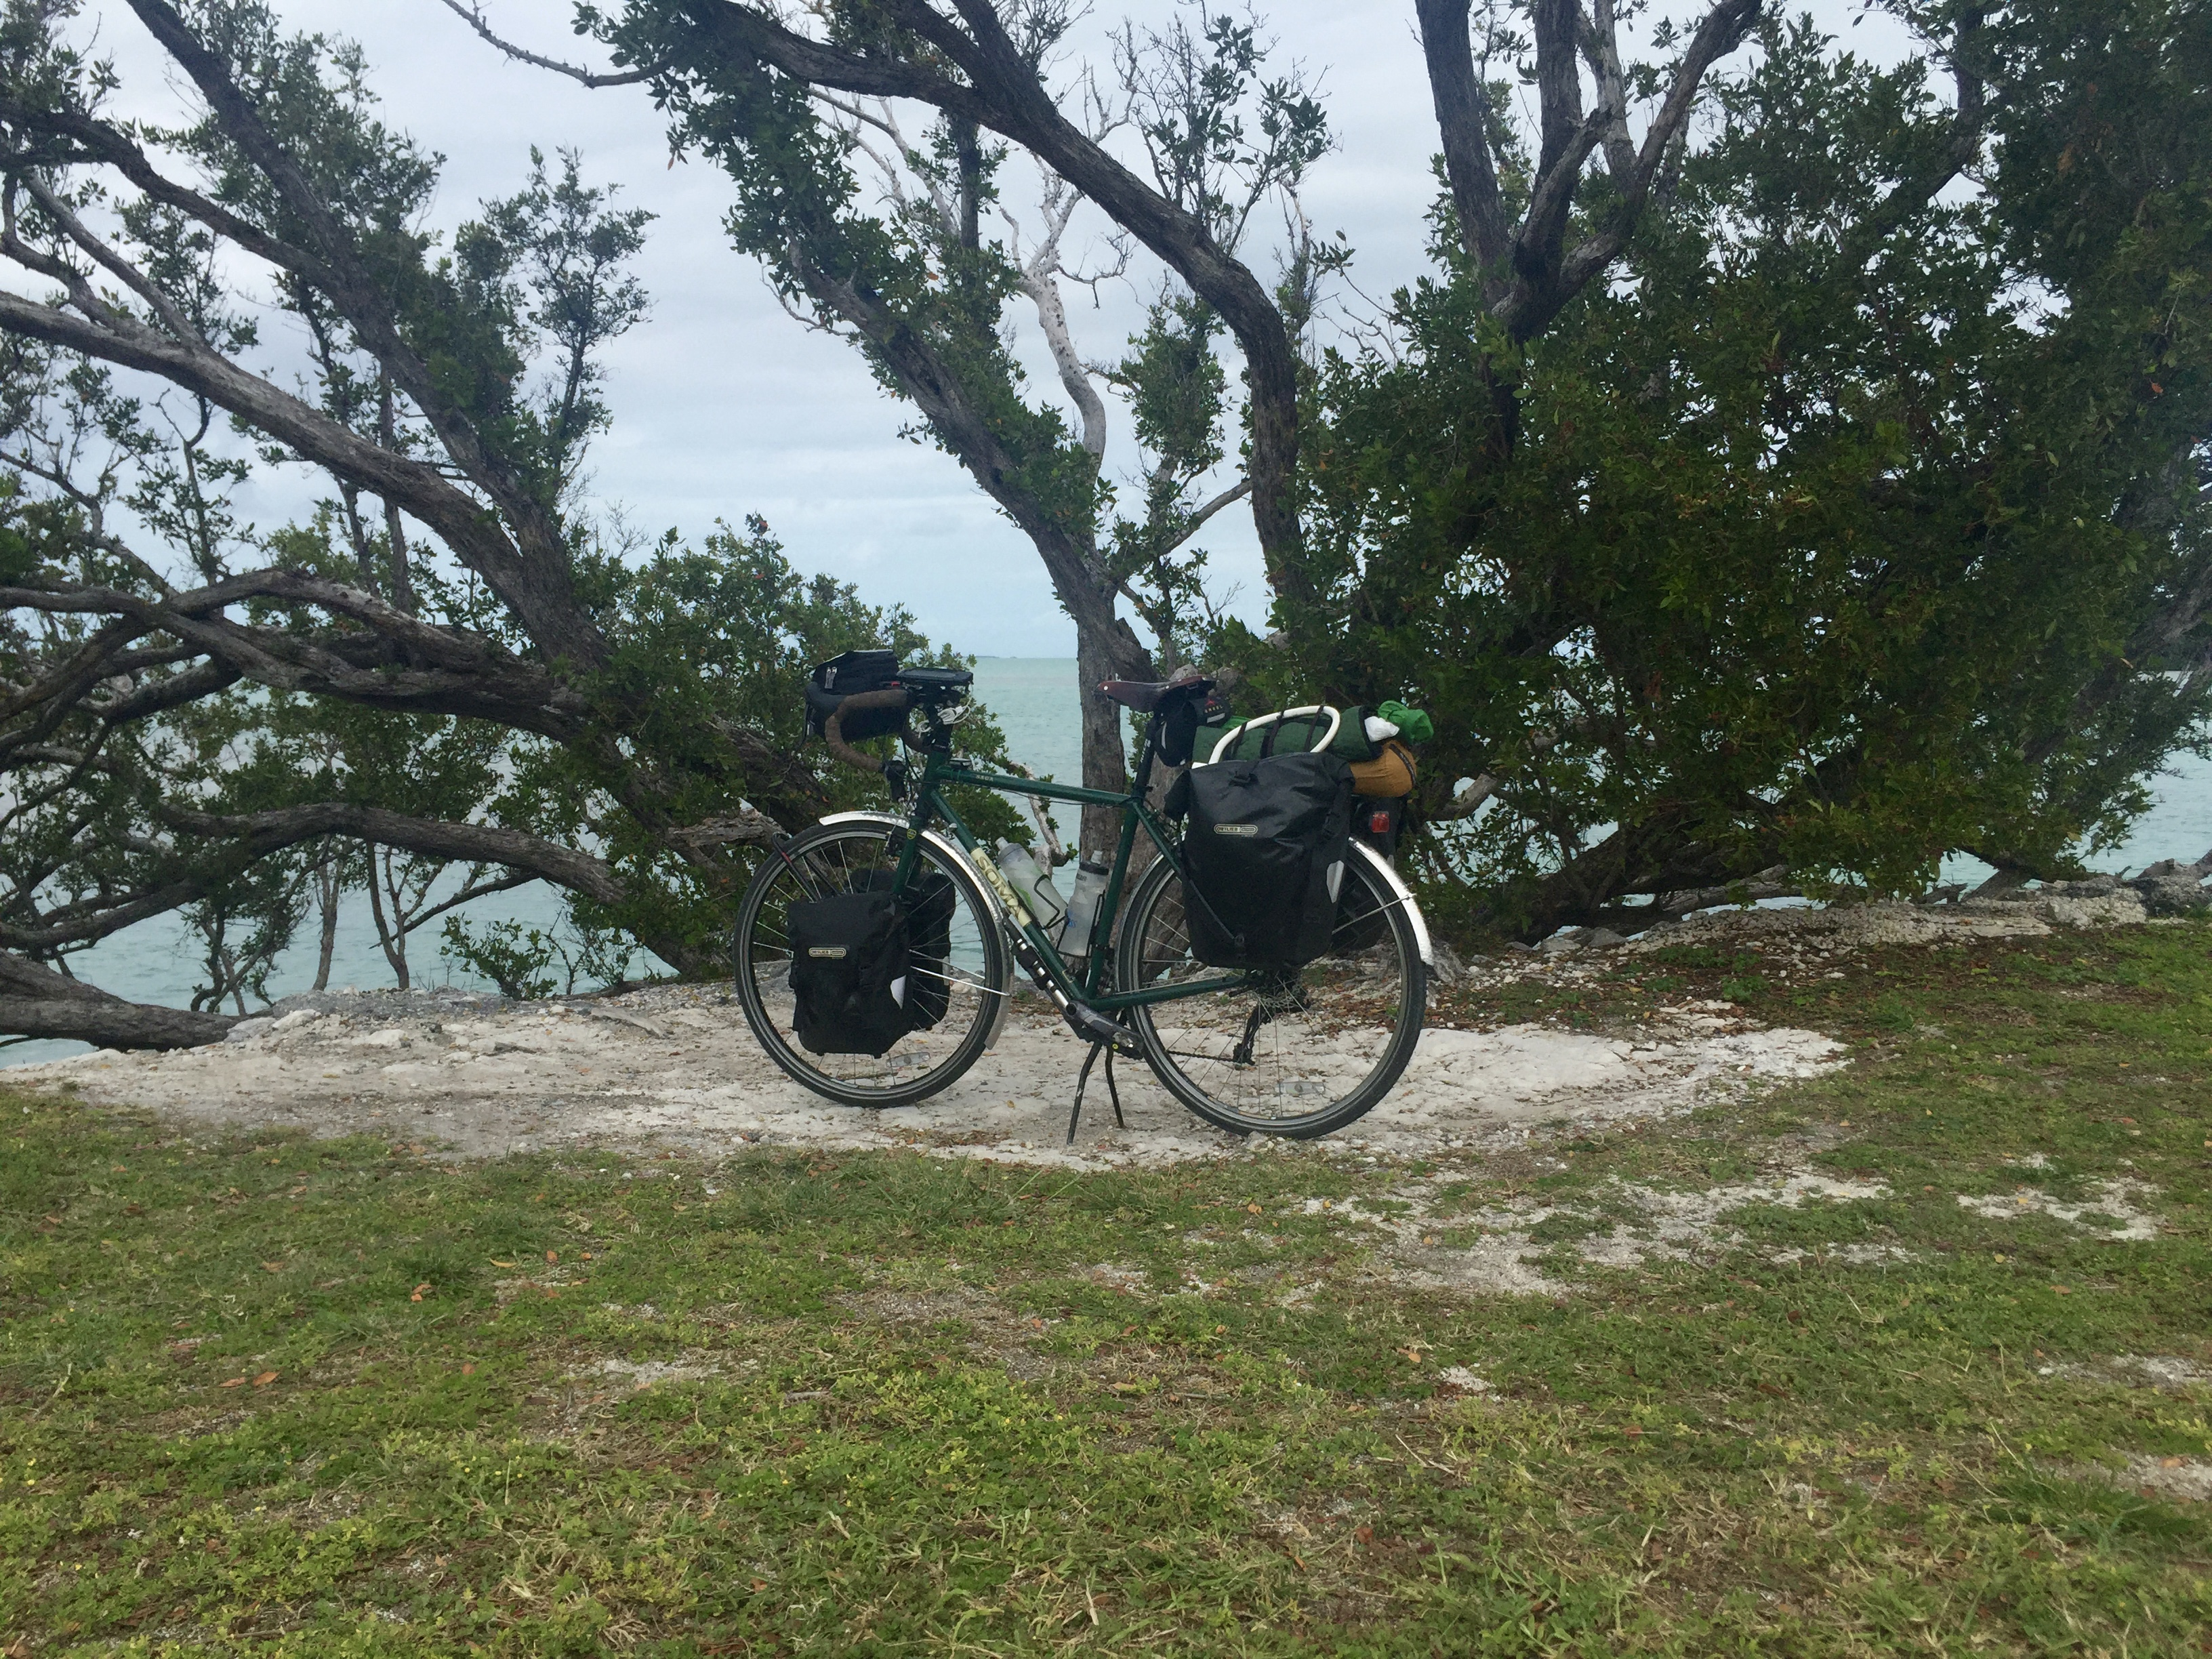 Bike by the Gulf of Mexico